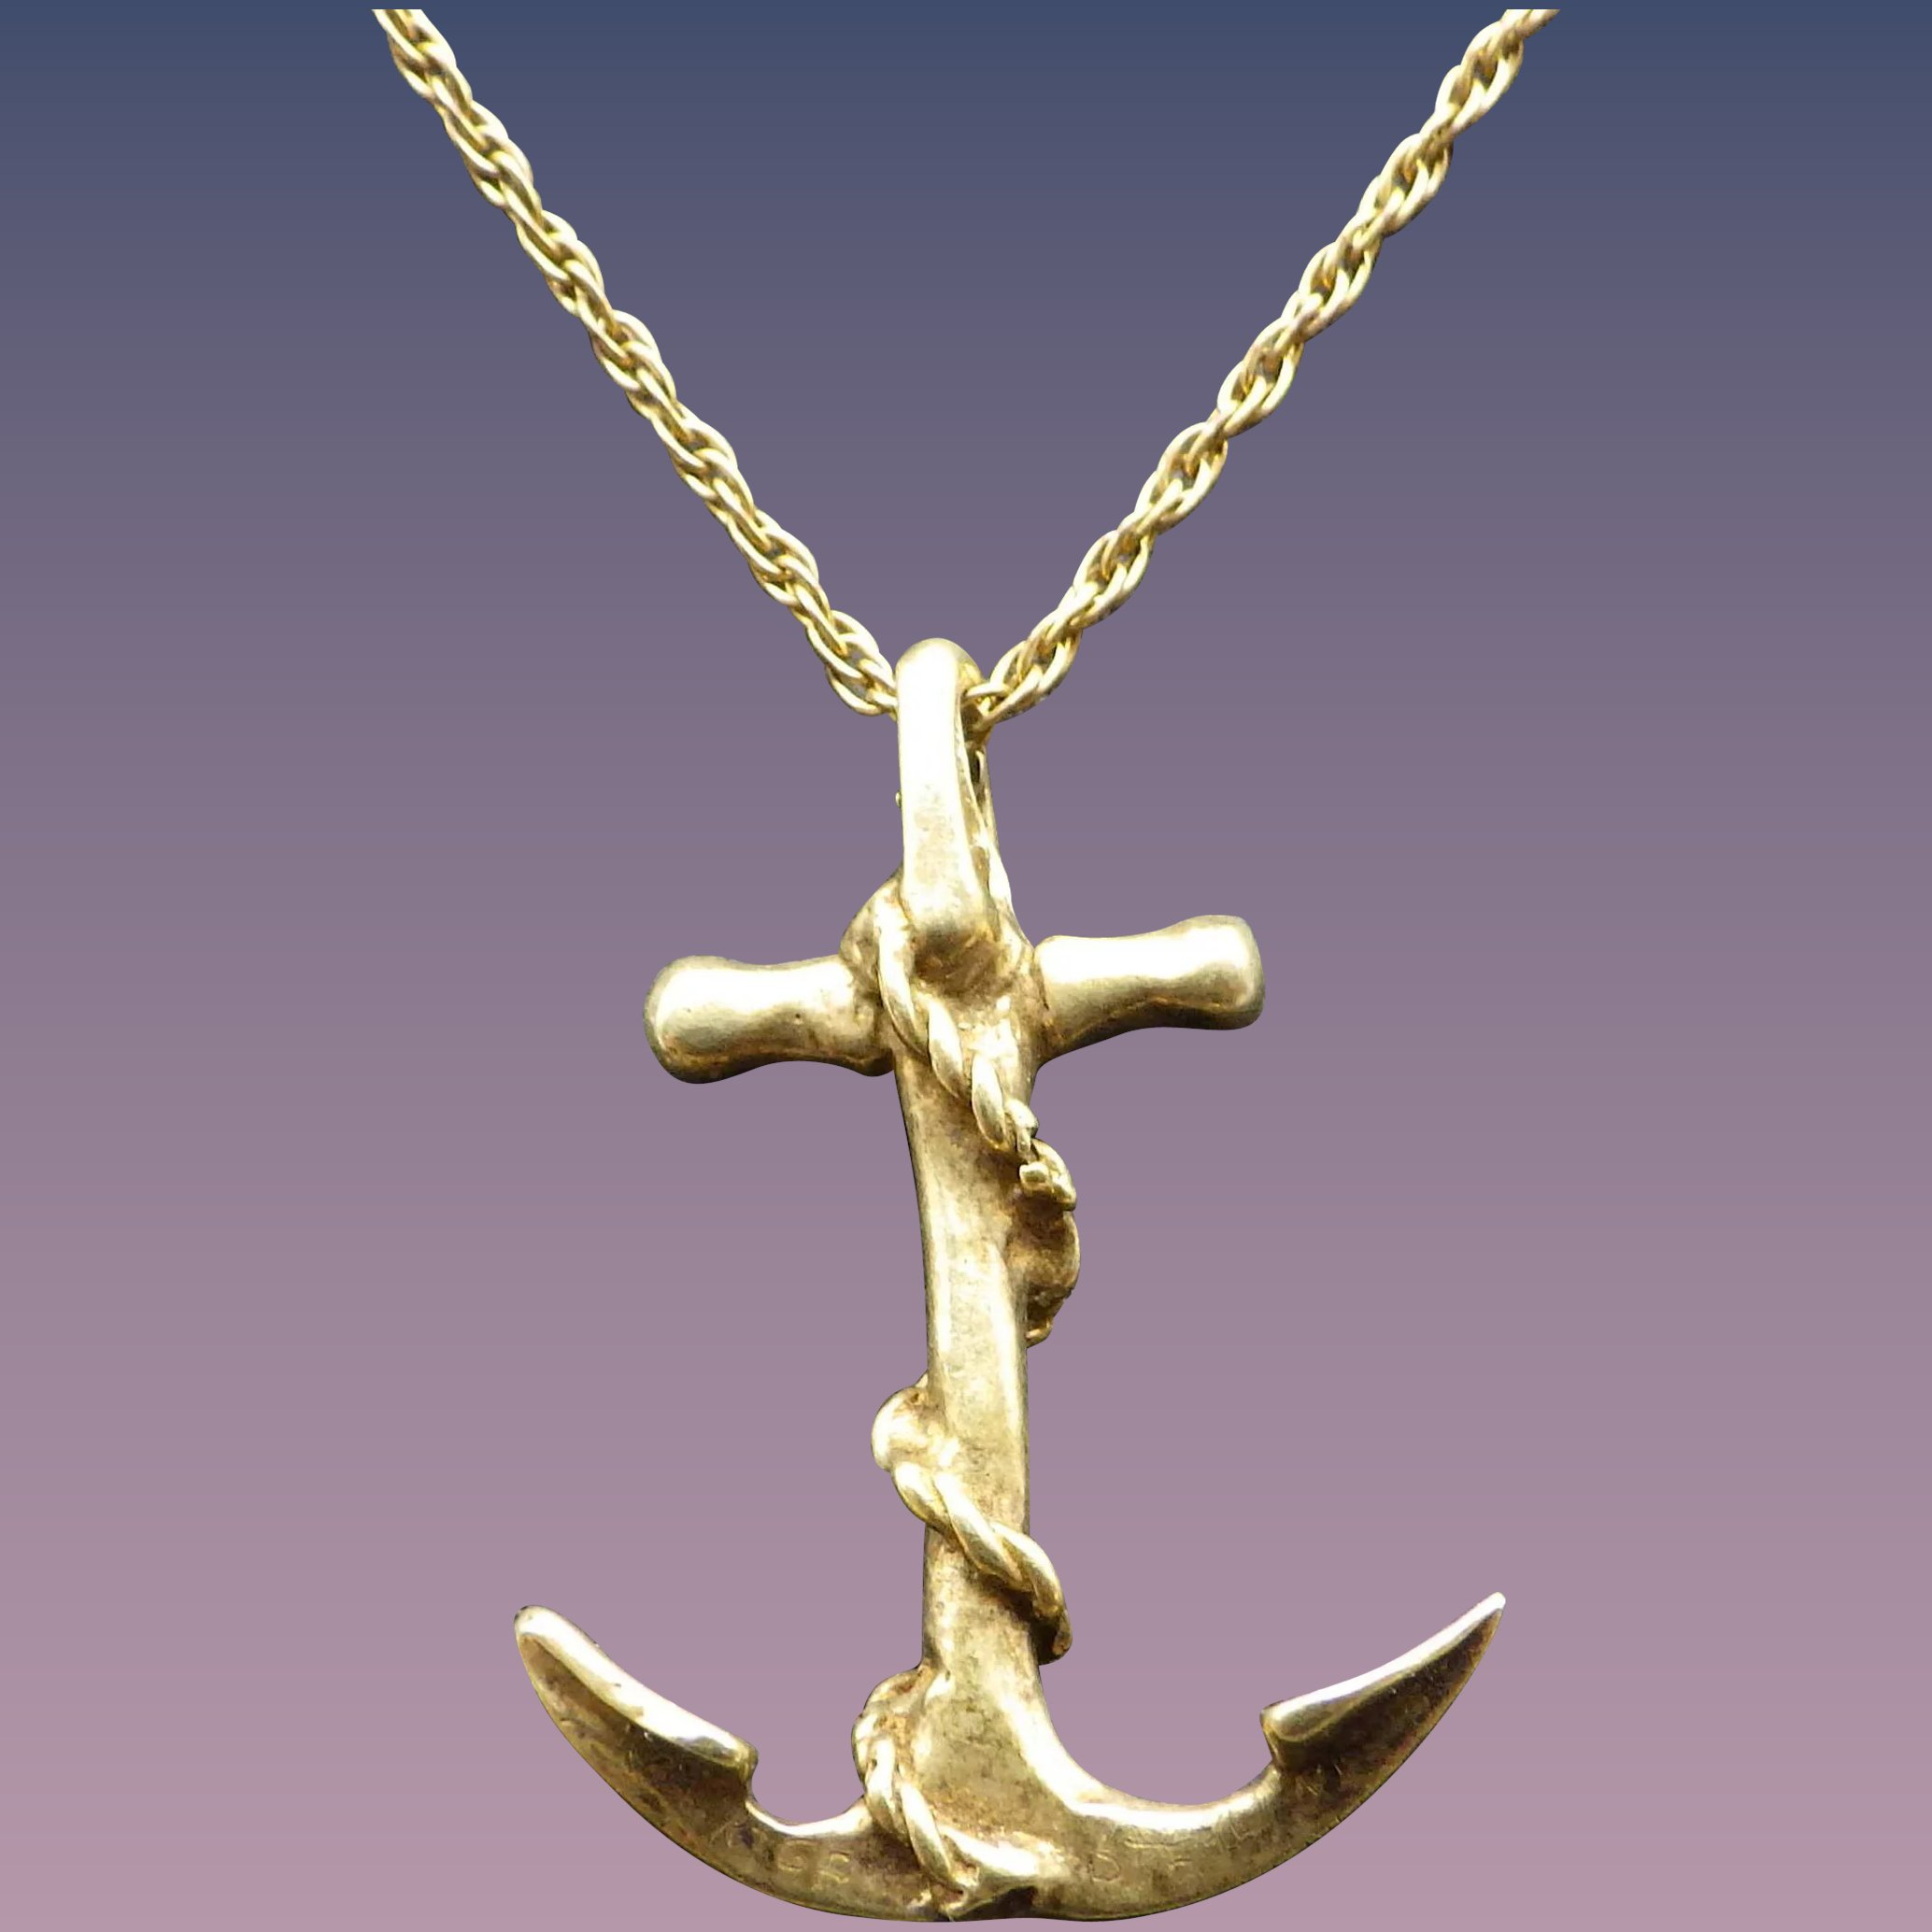 pink fashion anchor online pendant pin new necklace mcqueen chain dusty alexander newoffershop